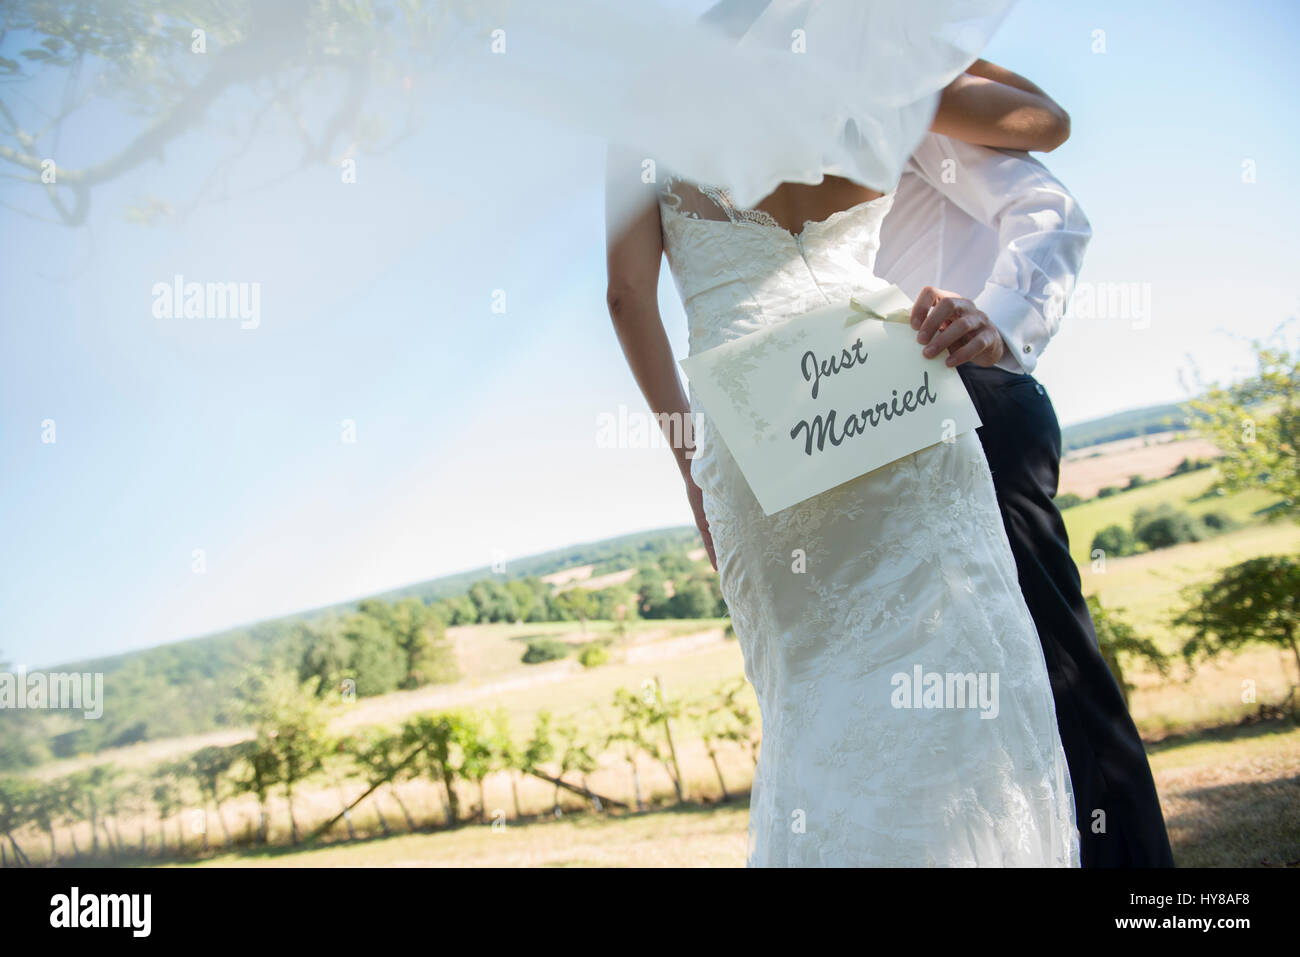 A bride and groom hold a Just Married sign on their wedding day - Stock Image